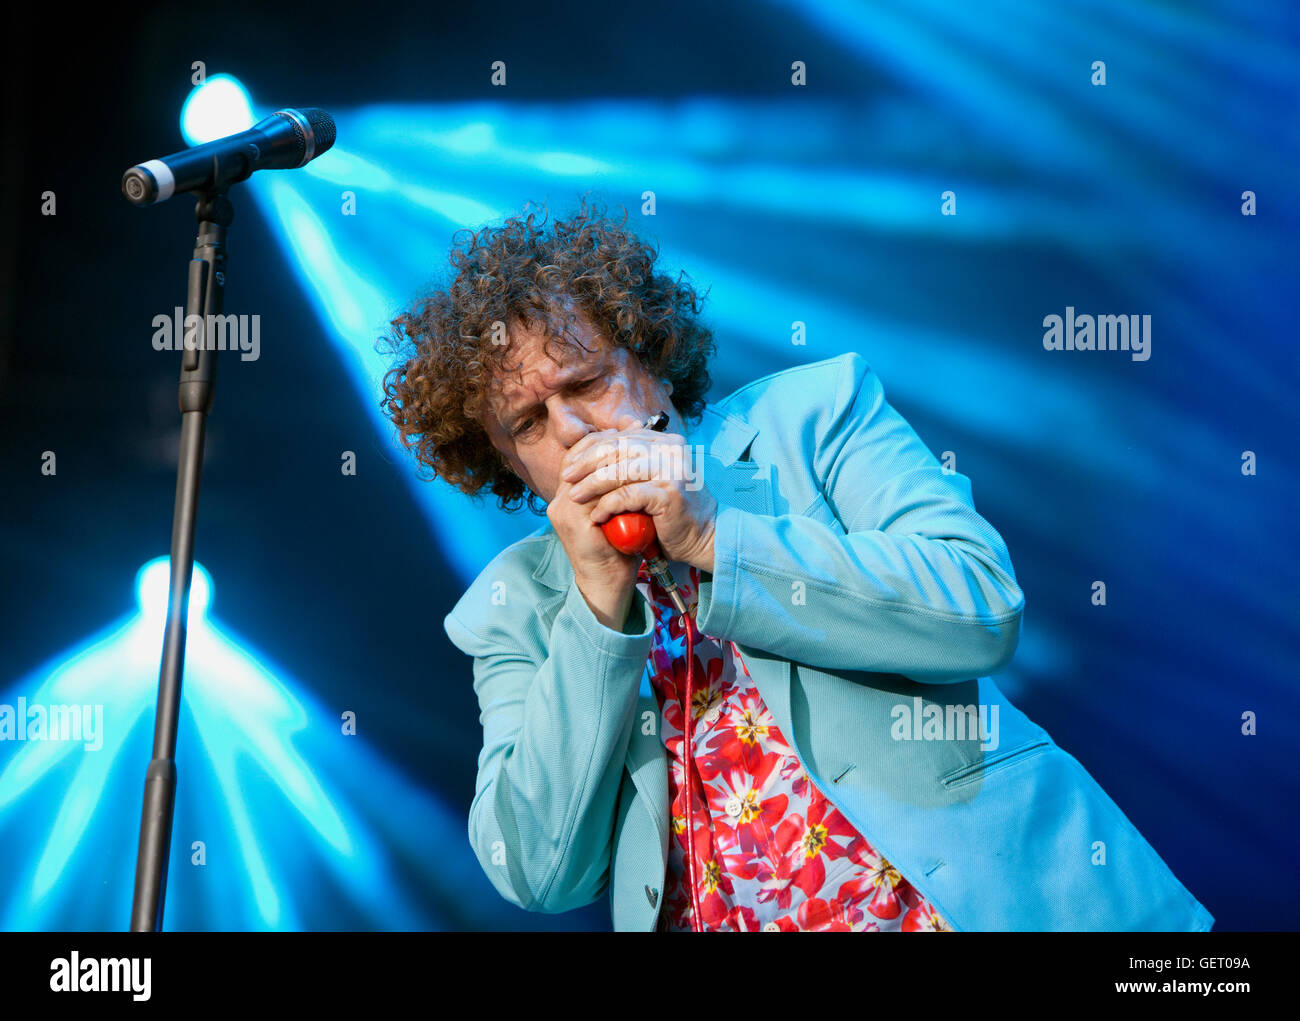 Leo Sayer Sings at The rewind festival sings at The Rewind Festival,Scone Palace,Perth,Scotland,Uk - Stock Image